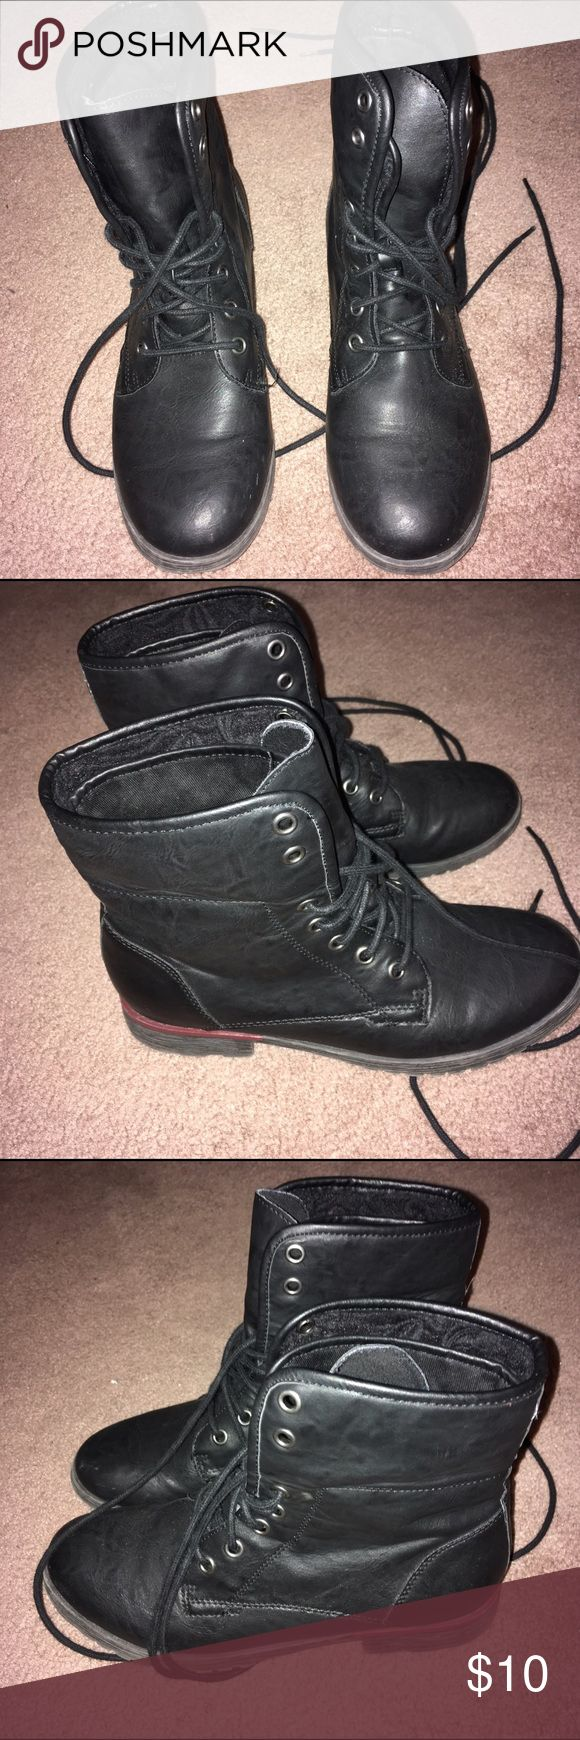 black combat boots these black combat boots are perfect for any season and any outfit. super cute and comfy and they fold as shows in the last picture. Shoes Ankle Boots & Booties